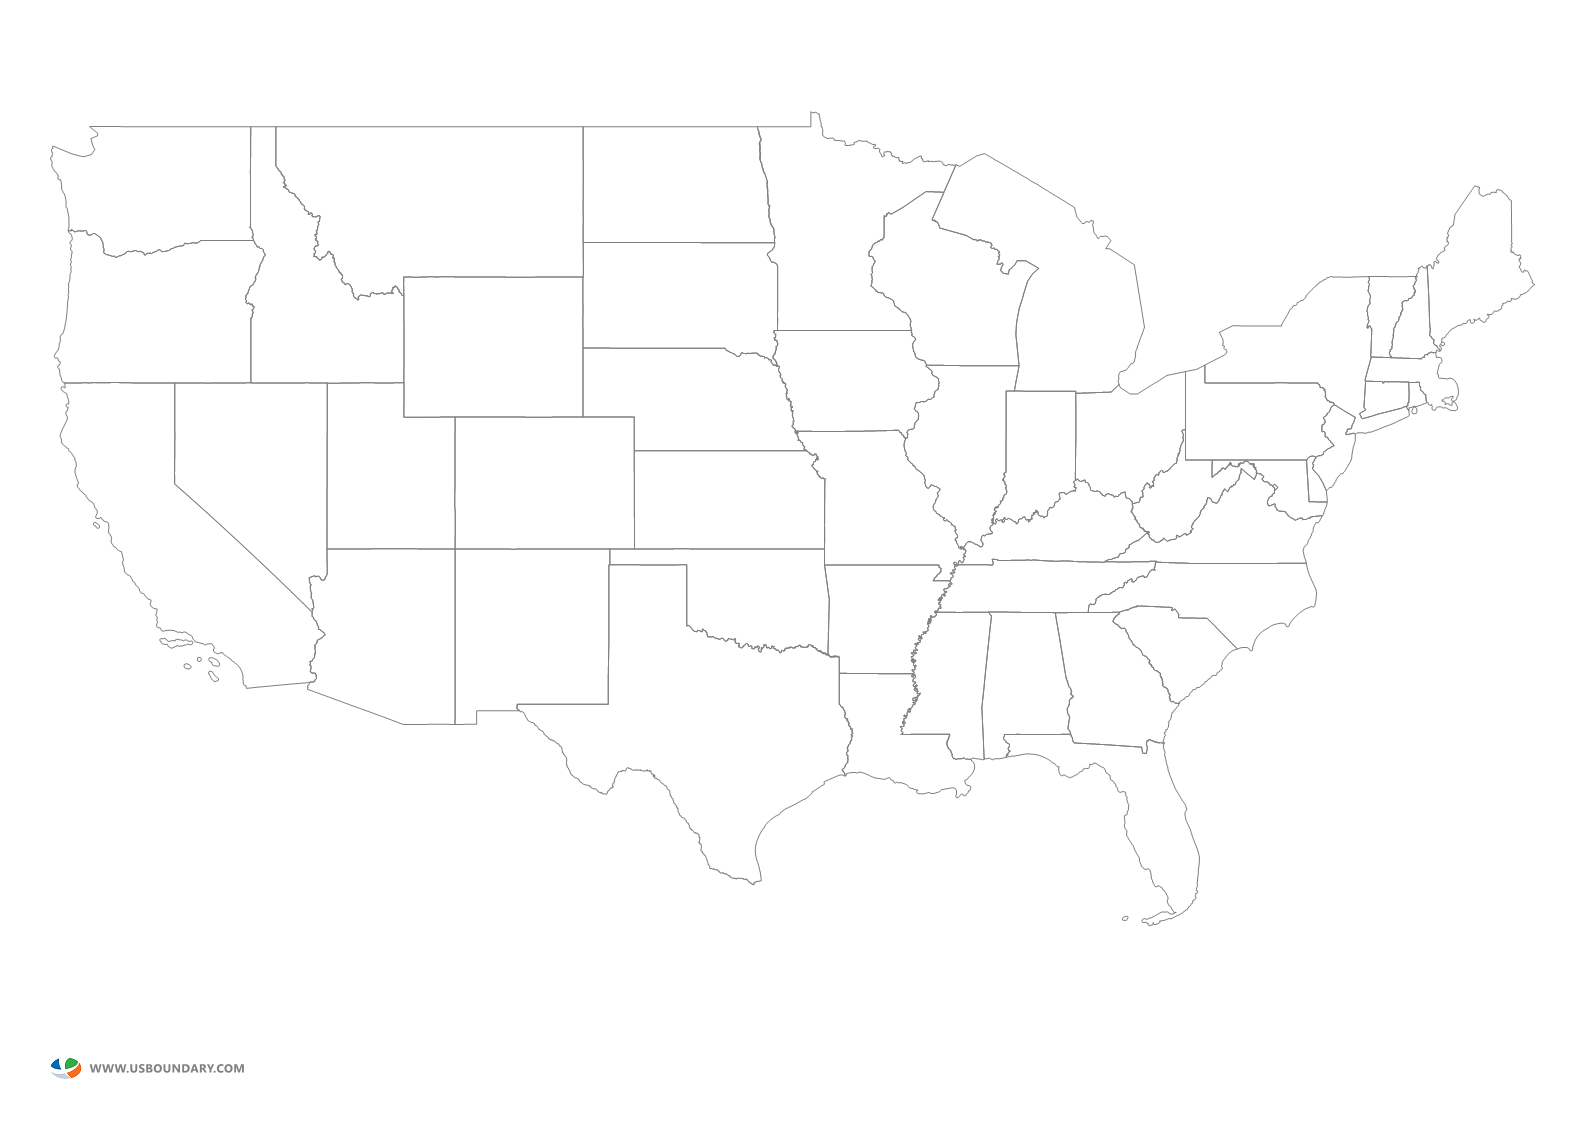 Us map clipart black and white clip art freeuse download Us Map Outline Transparent | Cdoovision.com clip art freeuse download